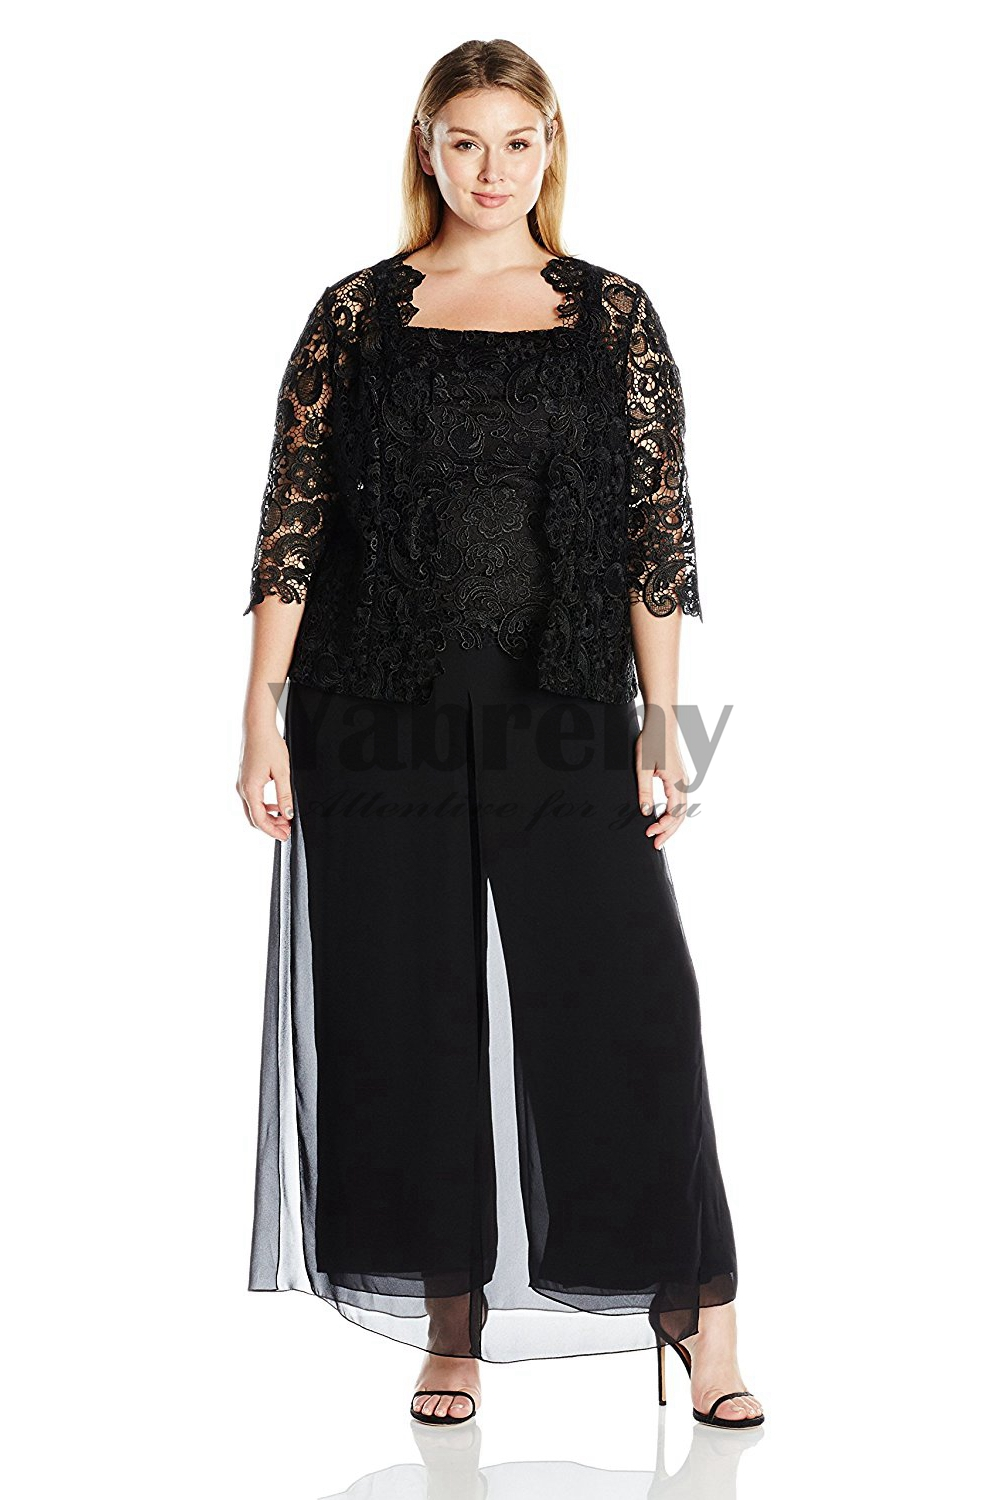 a08c07f2 Plus Size Mother Of The Bride Dresses And Pant Suits - raveitsafe